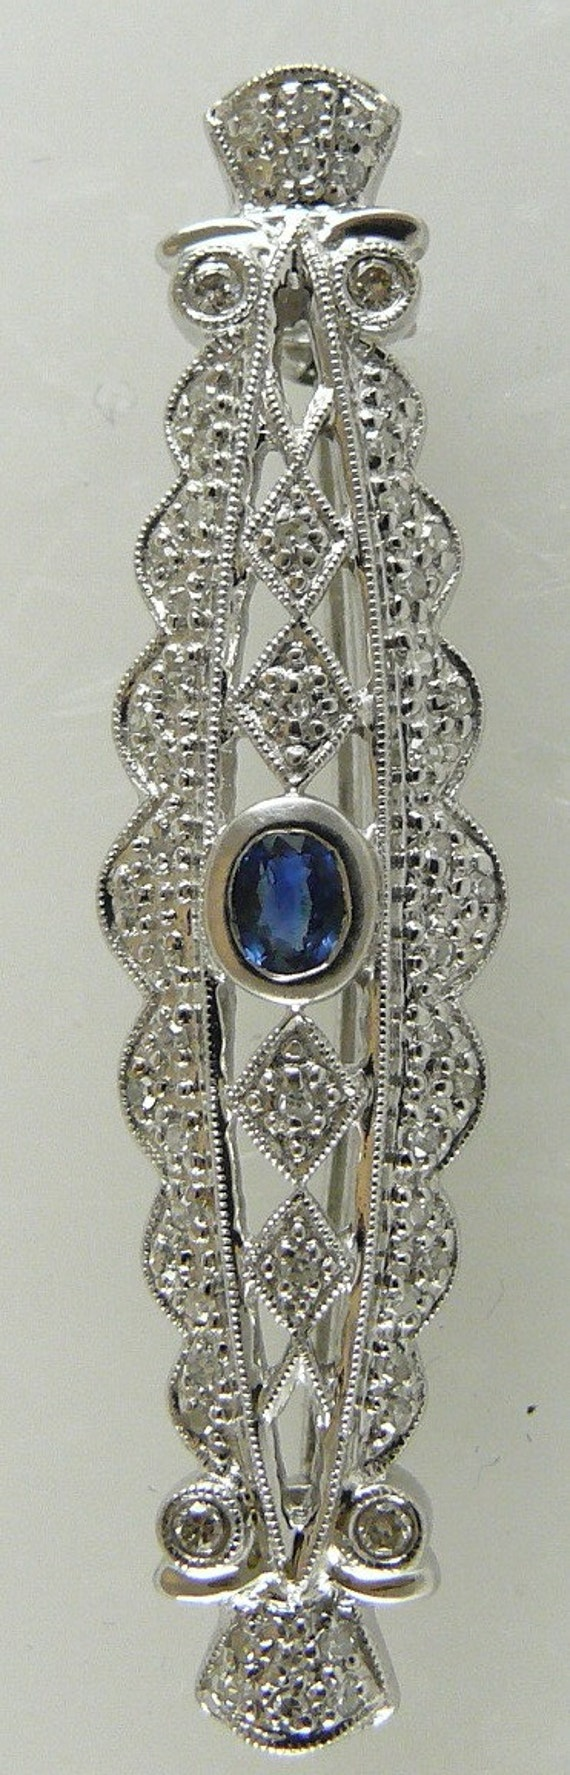 Sapphire 0.30ct Pin 18k White Gold with Diamonds 0.28ct